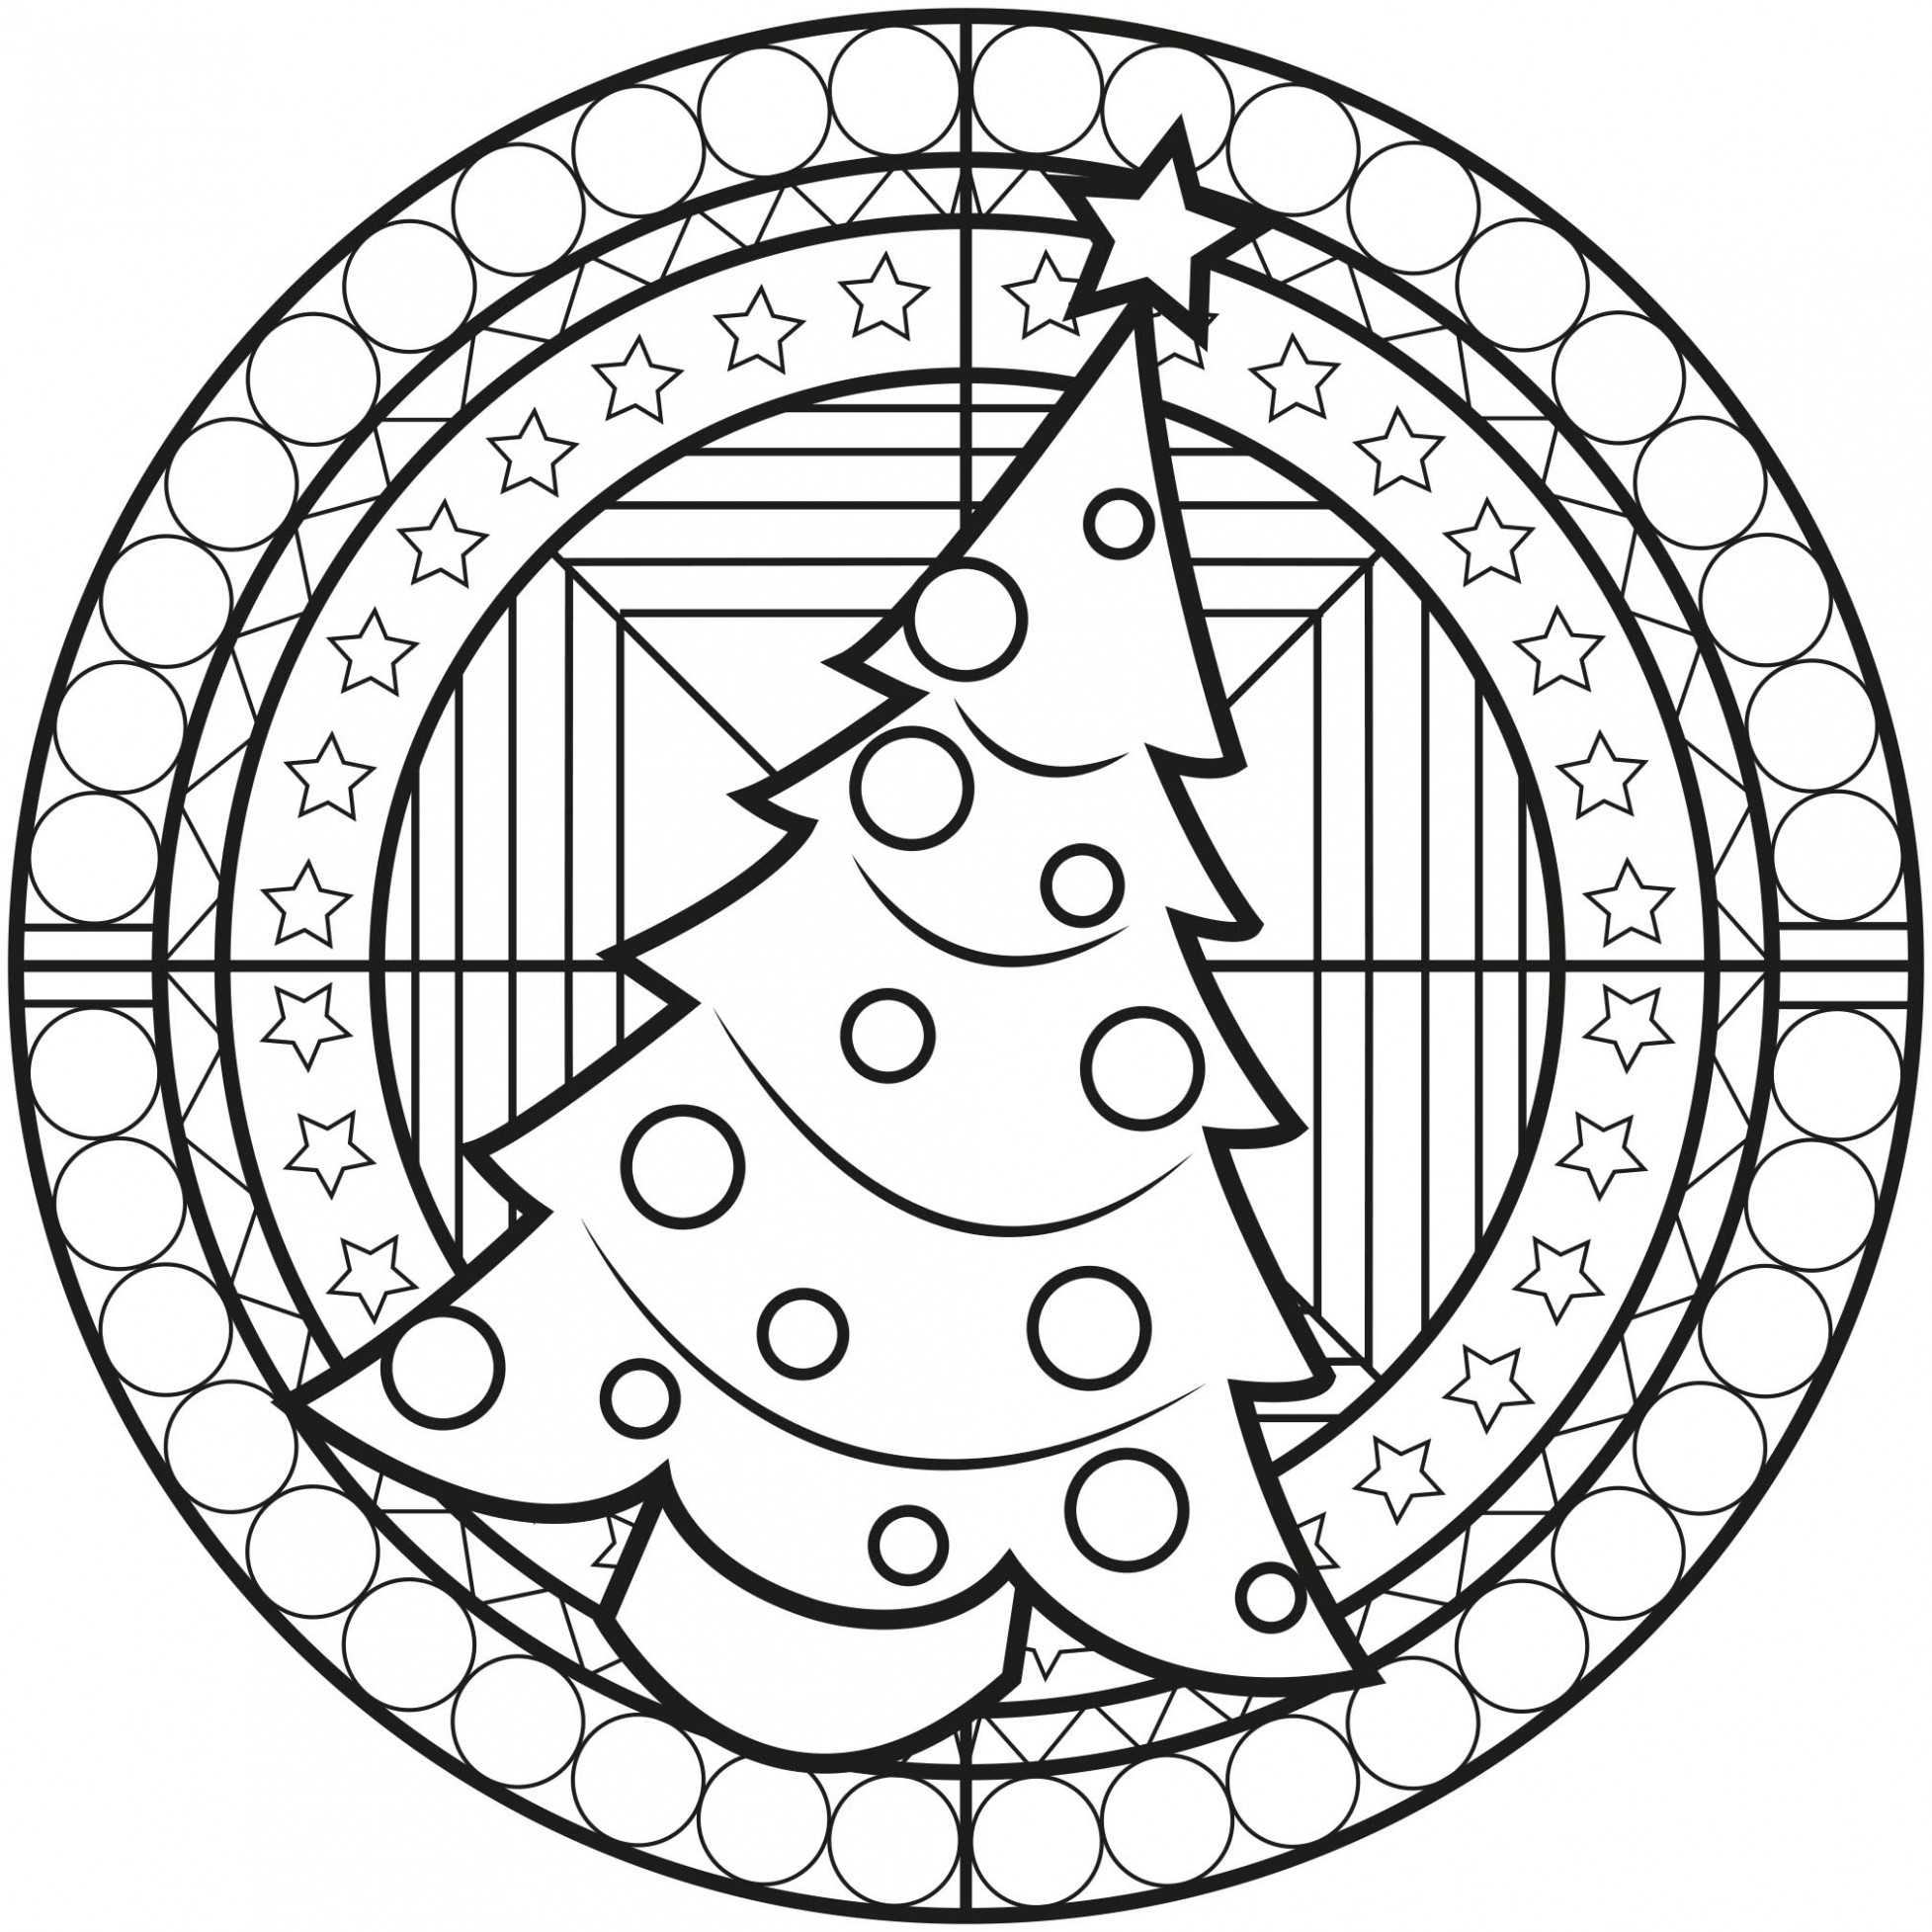 Christmas Tree Mandala - Simple Mandalas - 14% Mandalas Zen